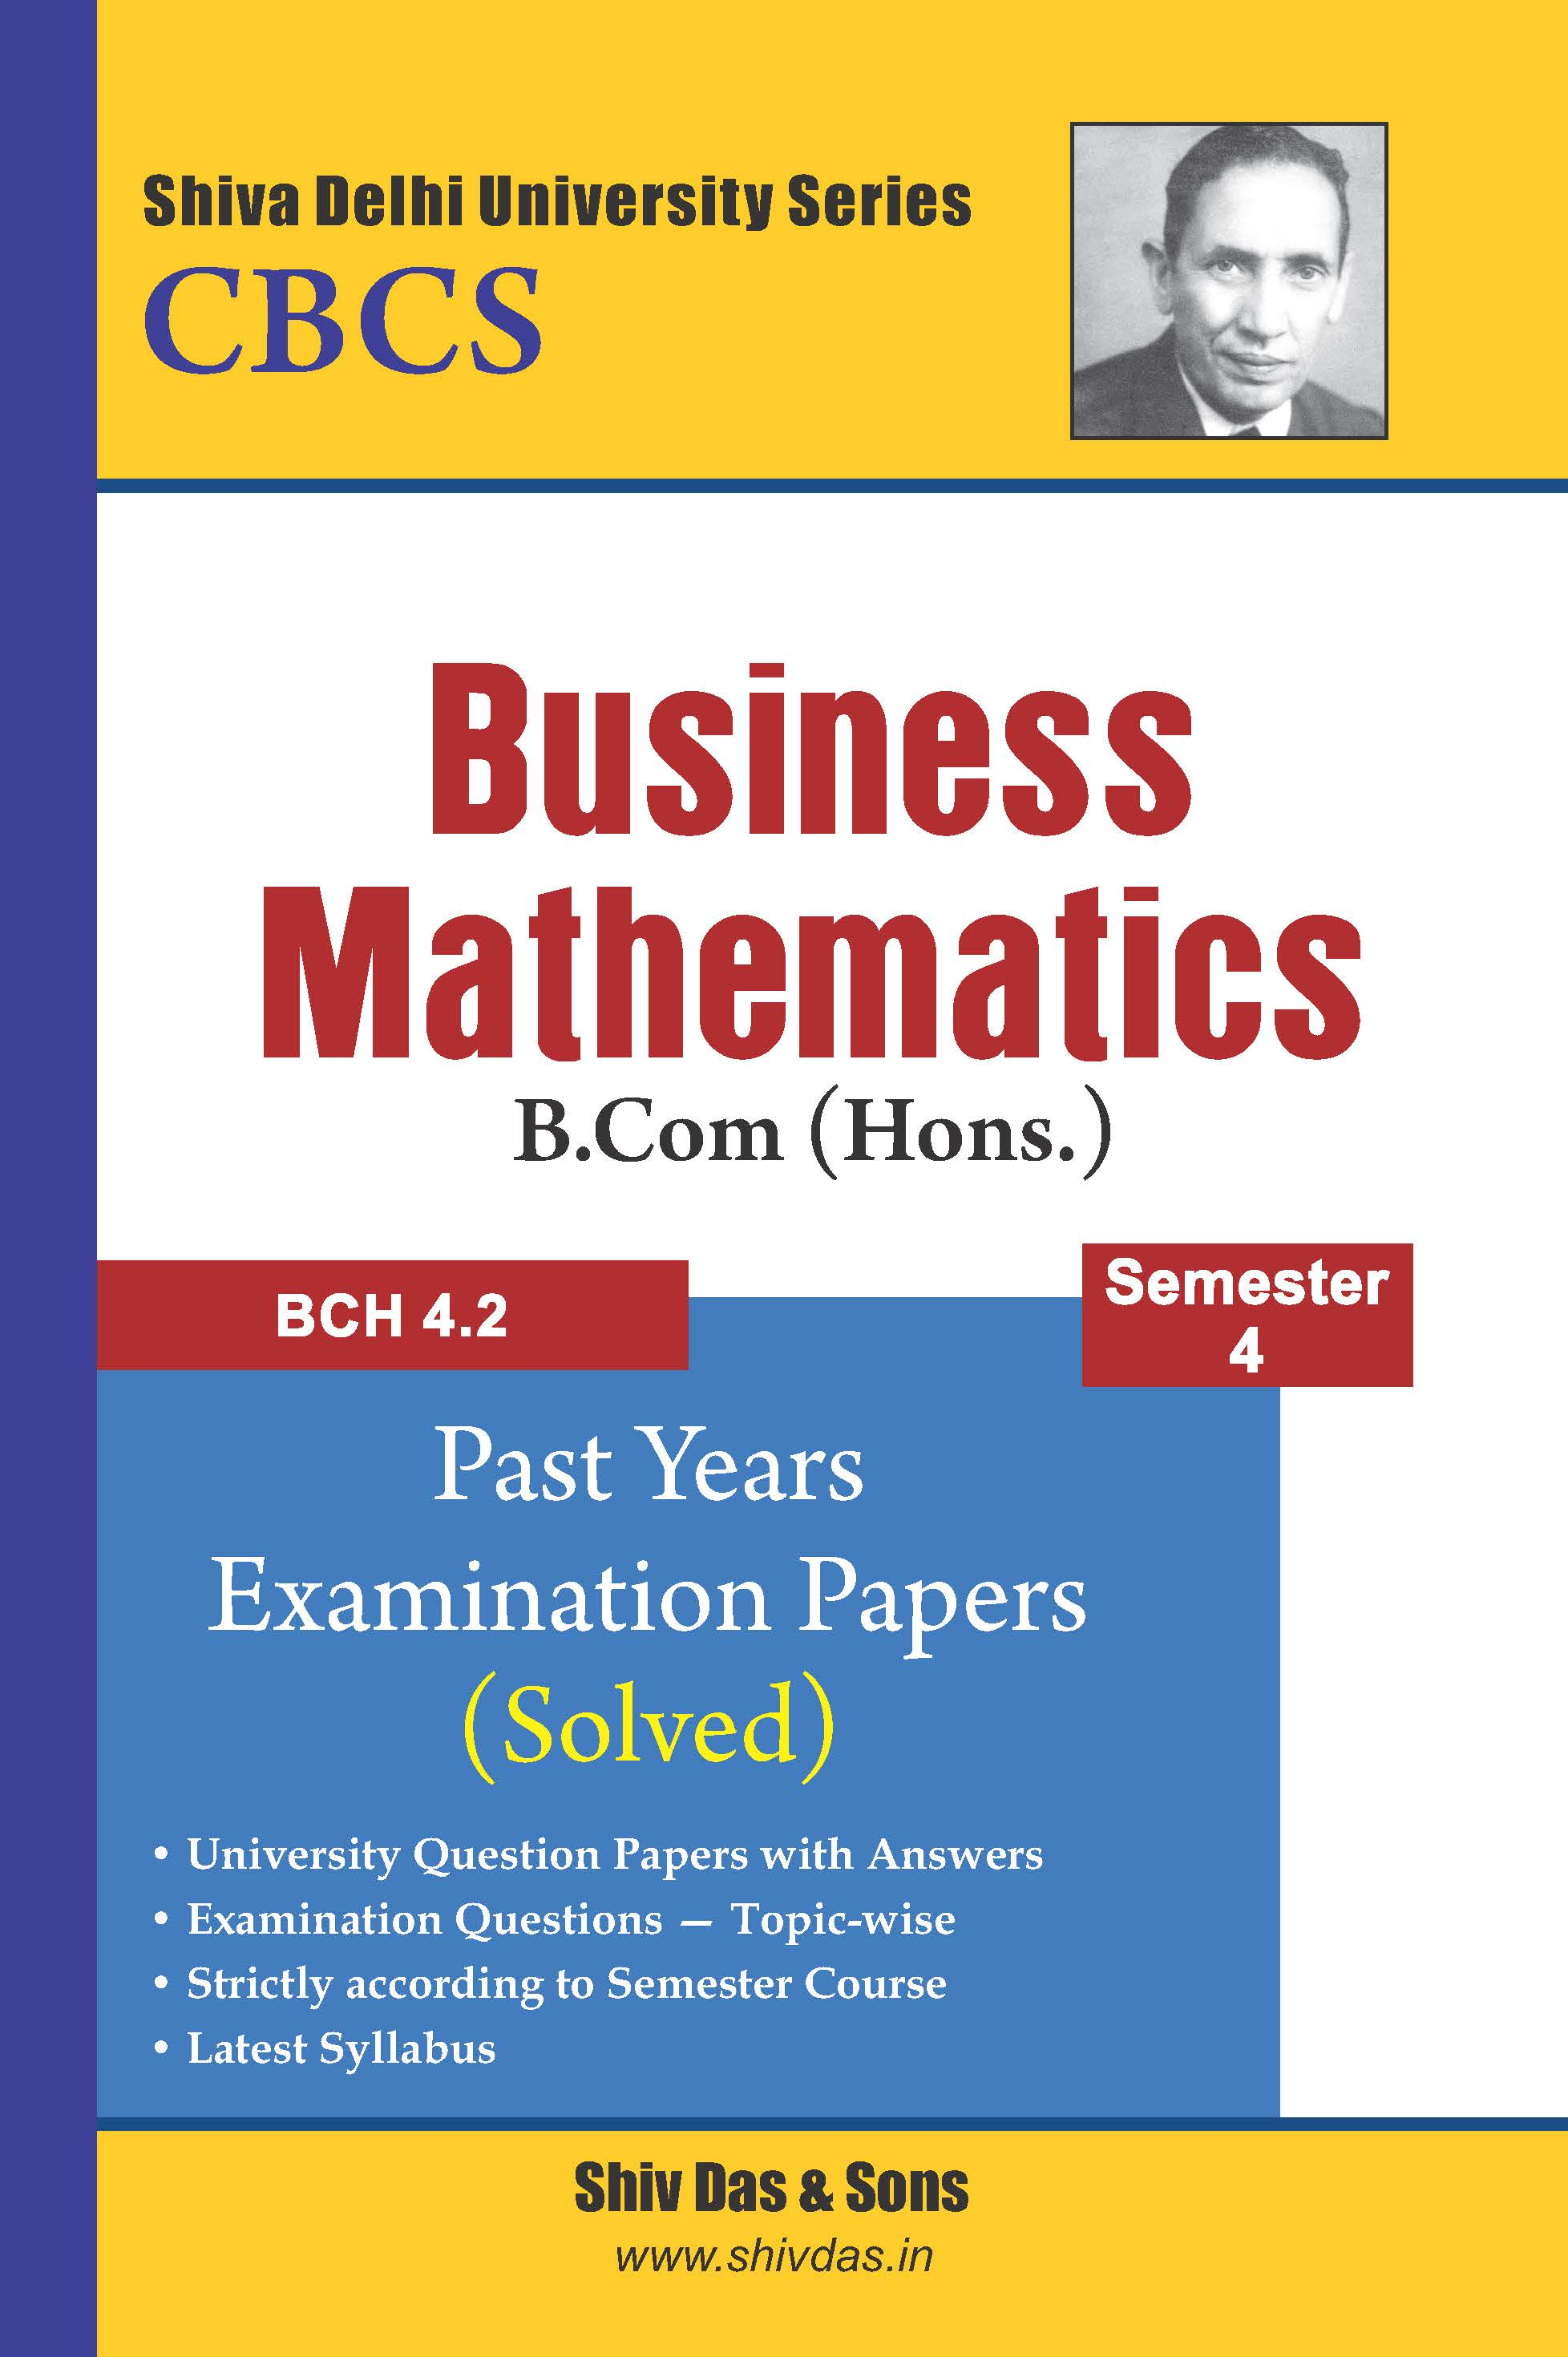 Business Mathematics for B.Com Hons Semester 4